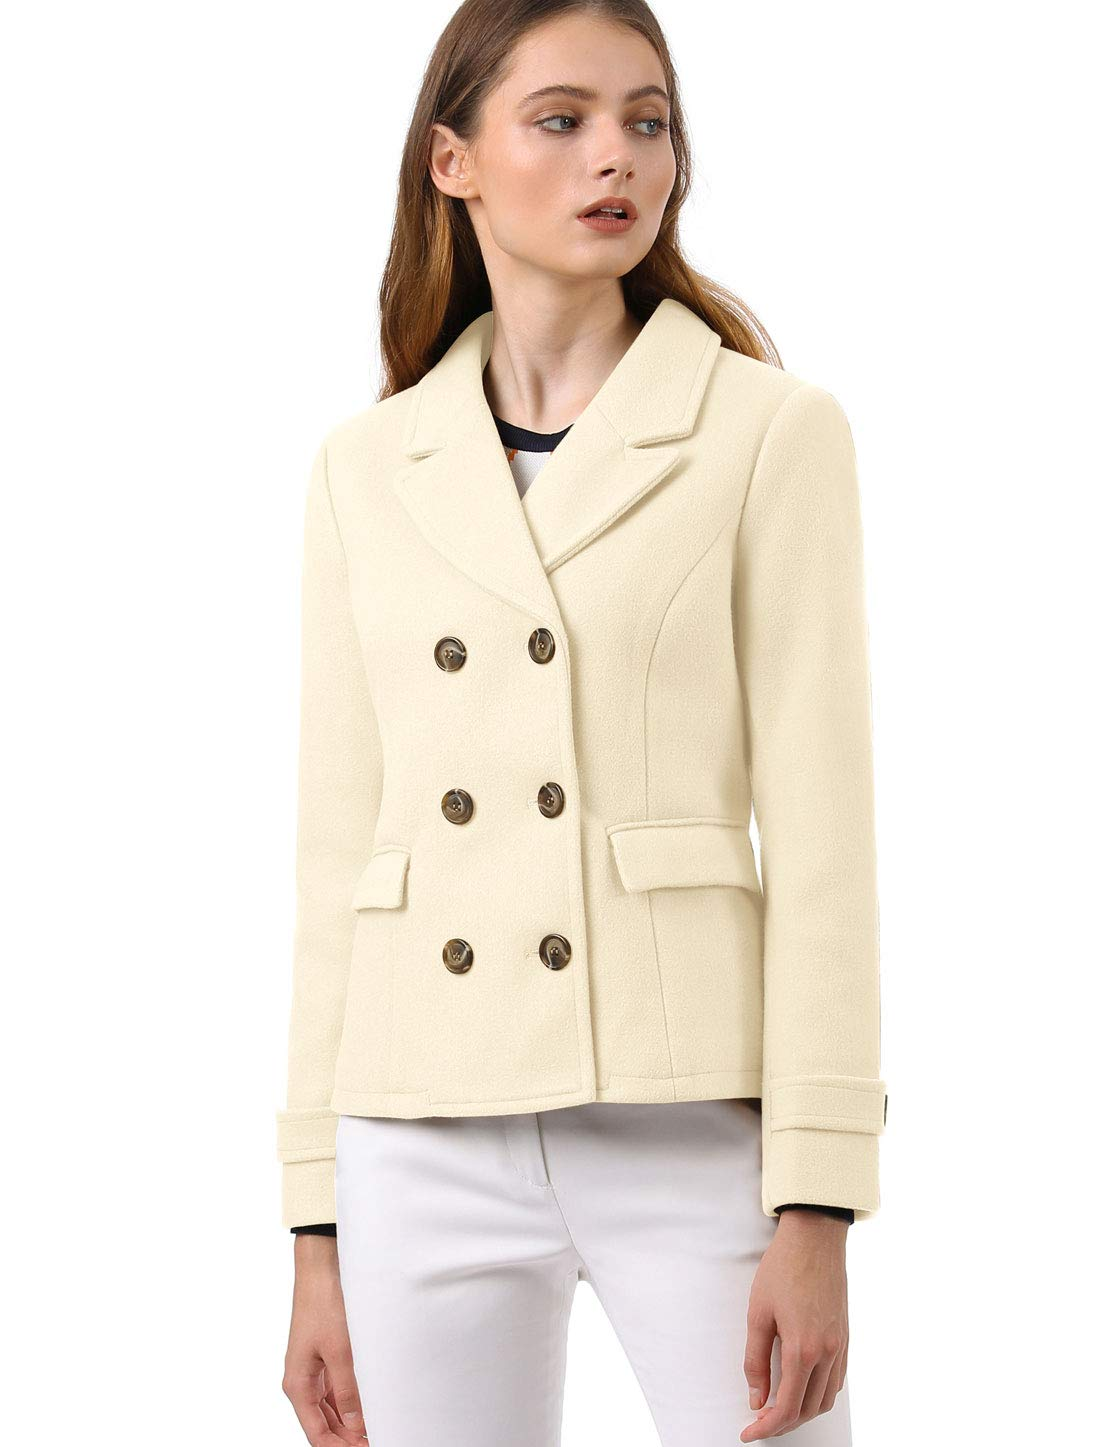 Allegra K Women's Notched Lapel Double Breasted Pea Coat